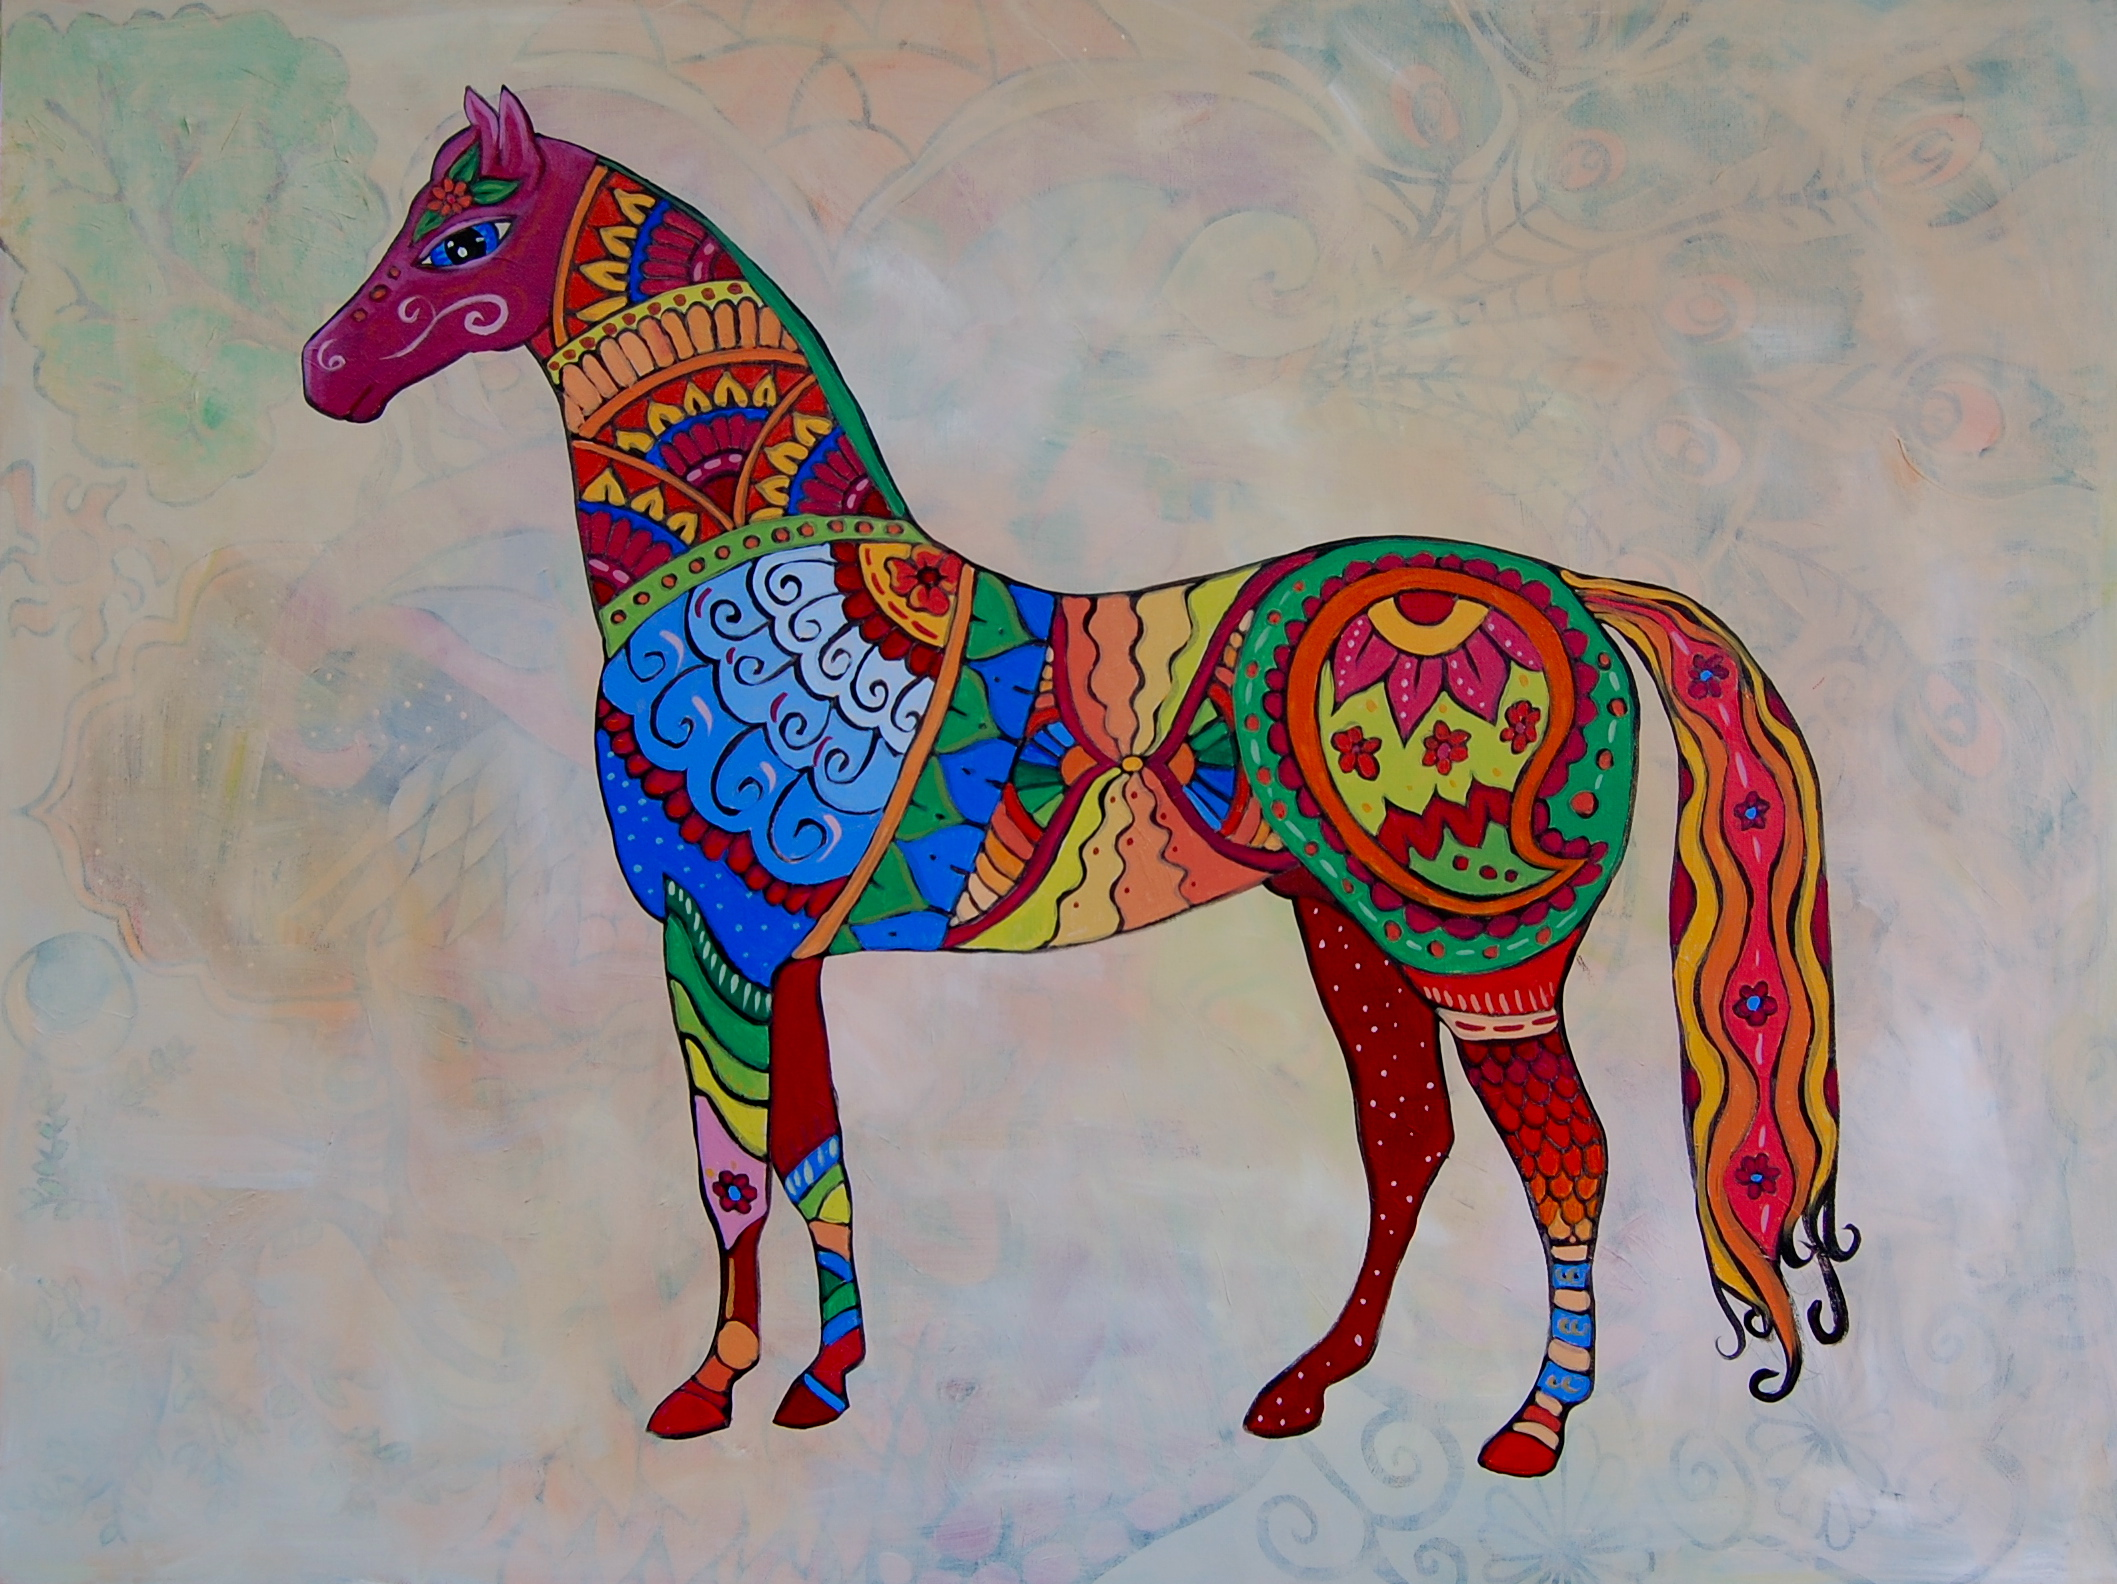 East Indian Patterns http://jenniferkellerart.com/2012/02/28/psychedelic-animals-for-next-months-show/